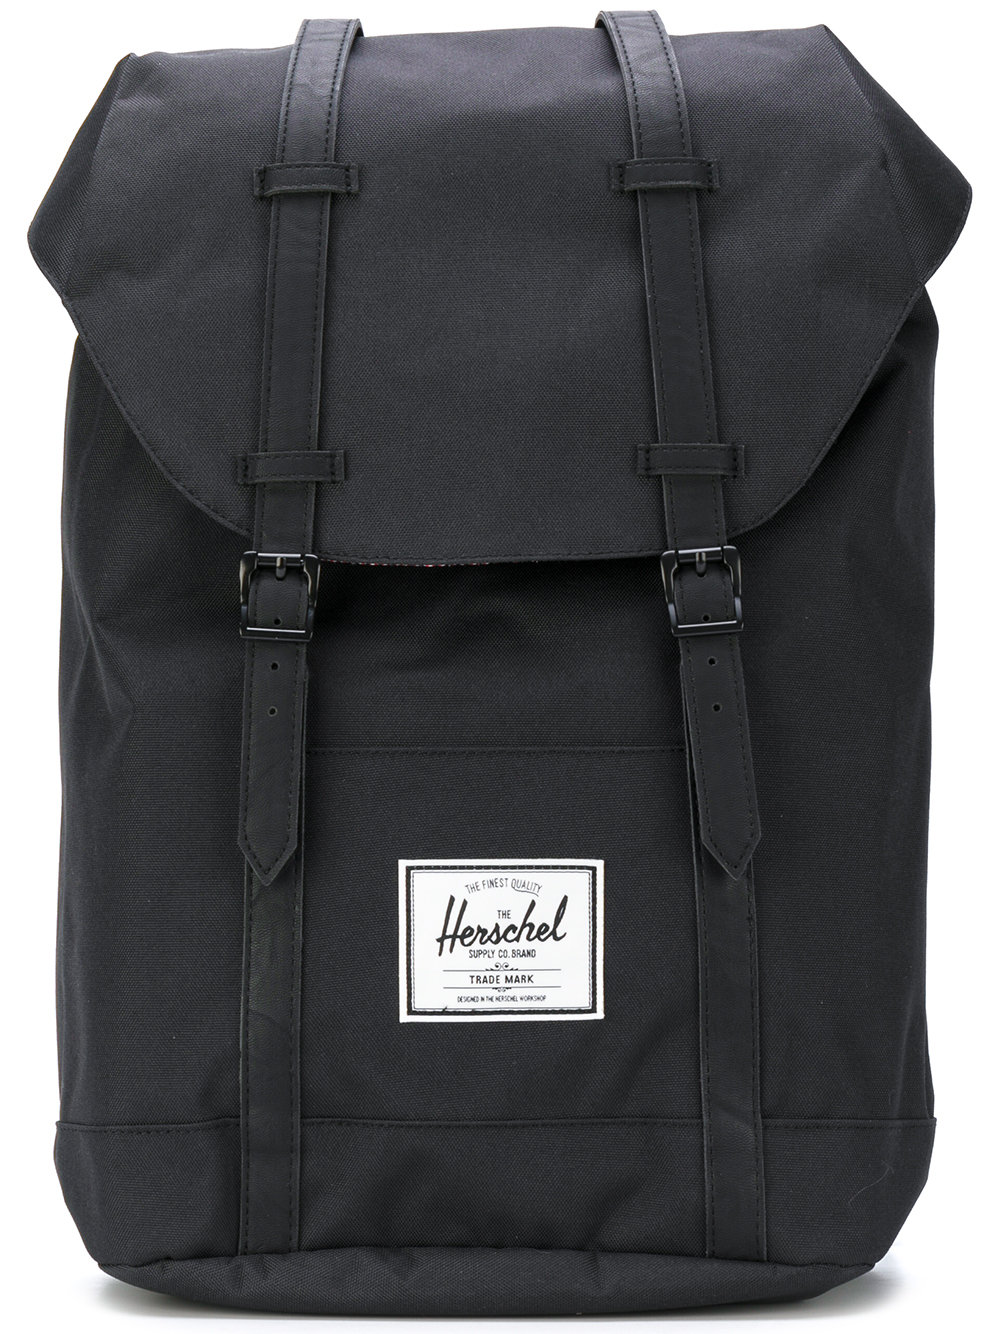 Mochila Herschel Supply Co., na Farfetch (R$660,00)